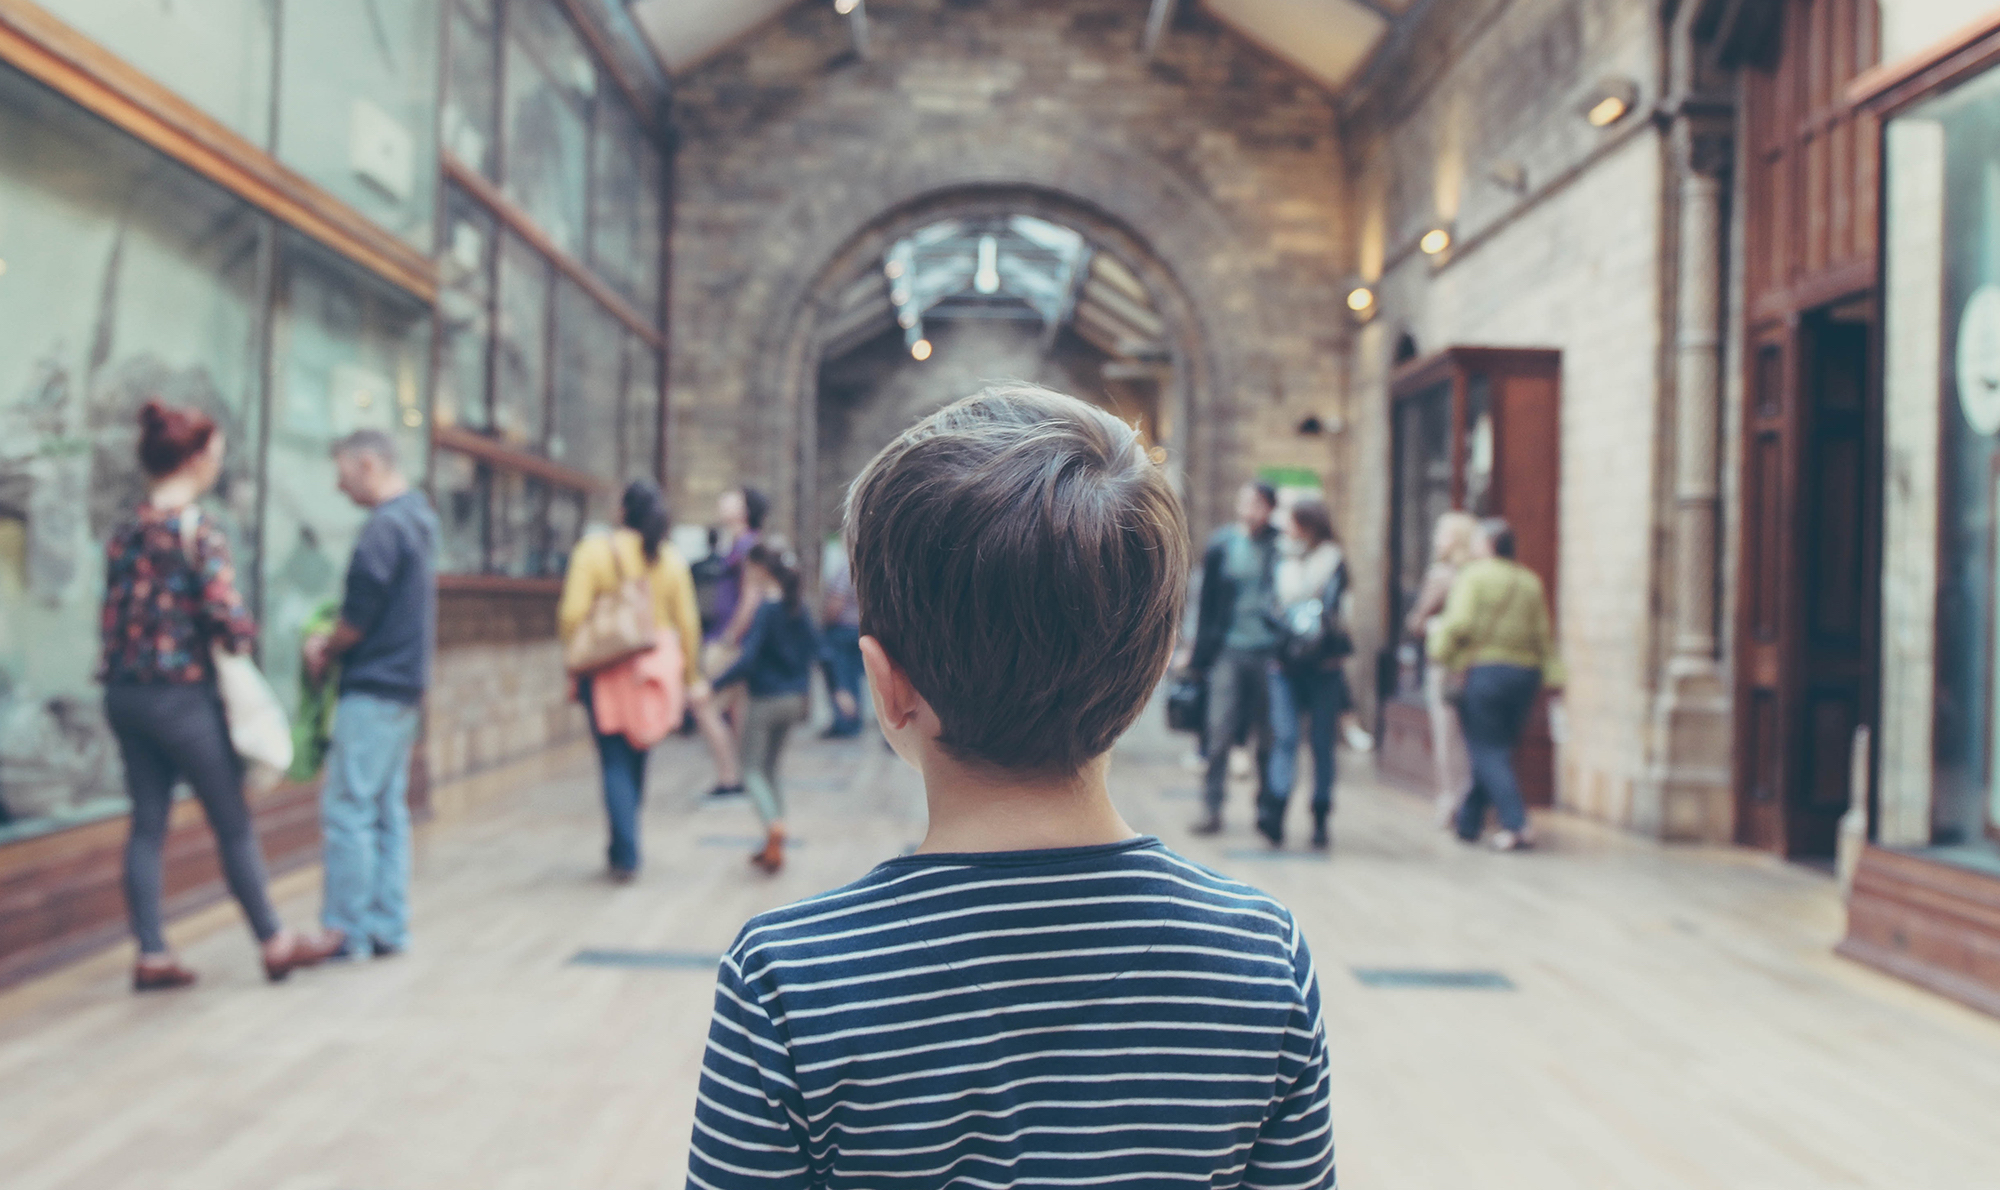 Child looking away from the camera, at a Victorian-style museum hall, with glass cases containing exhibits to the left and adults in the background.